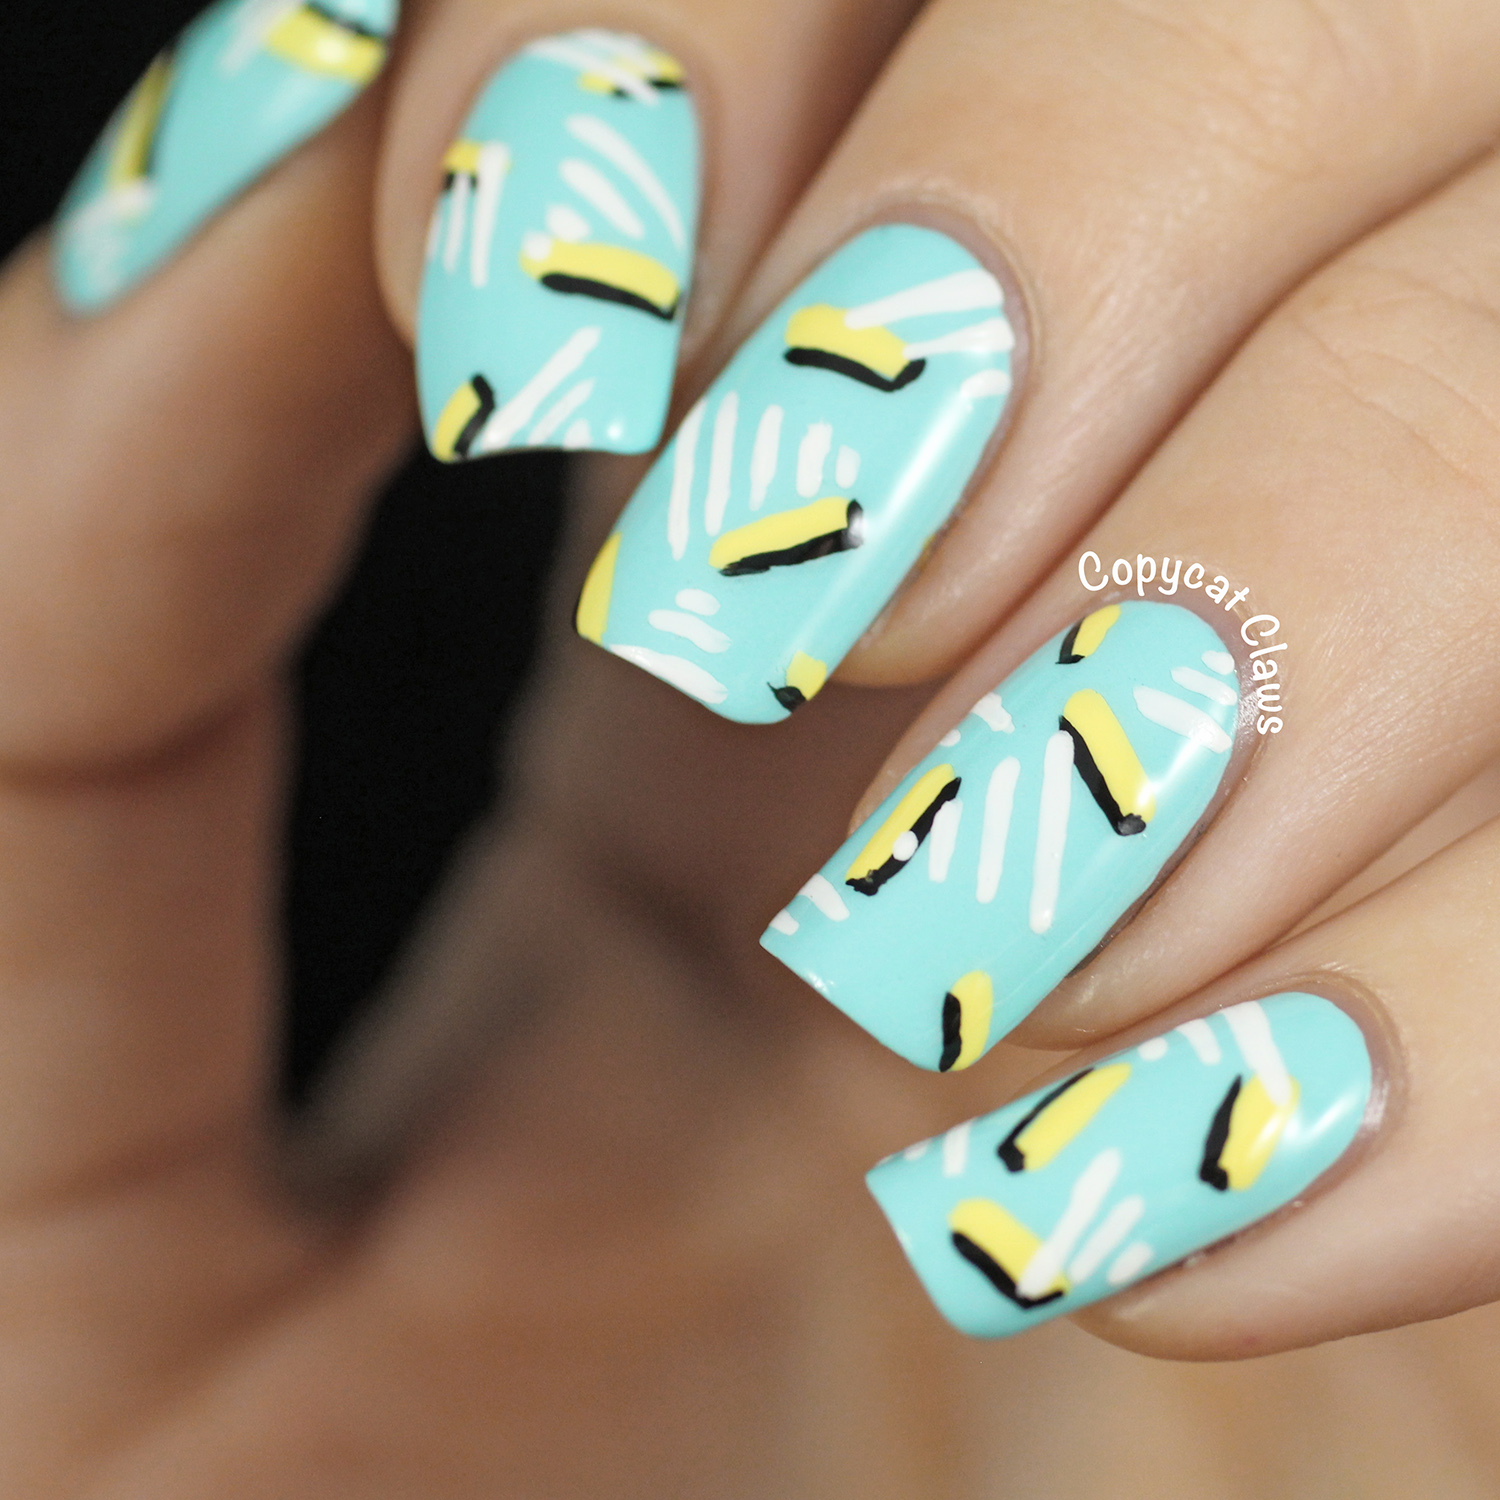 Copycat Claws: 80's Nail Art